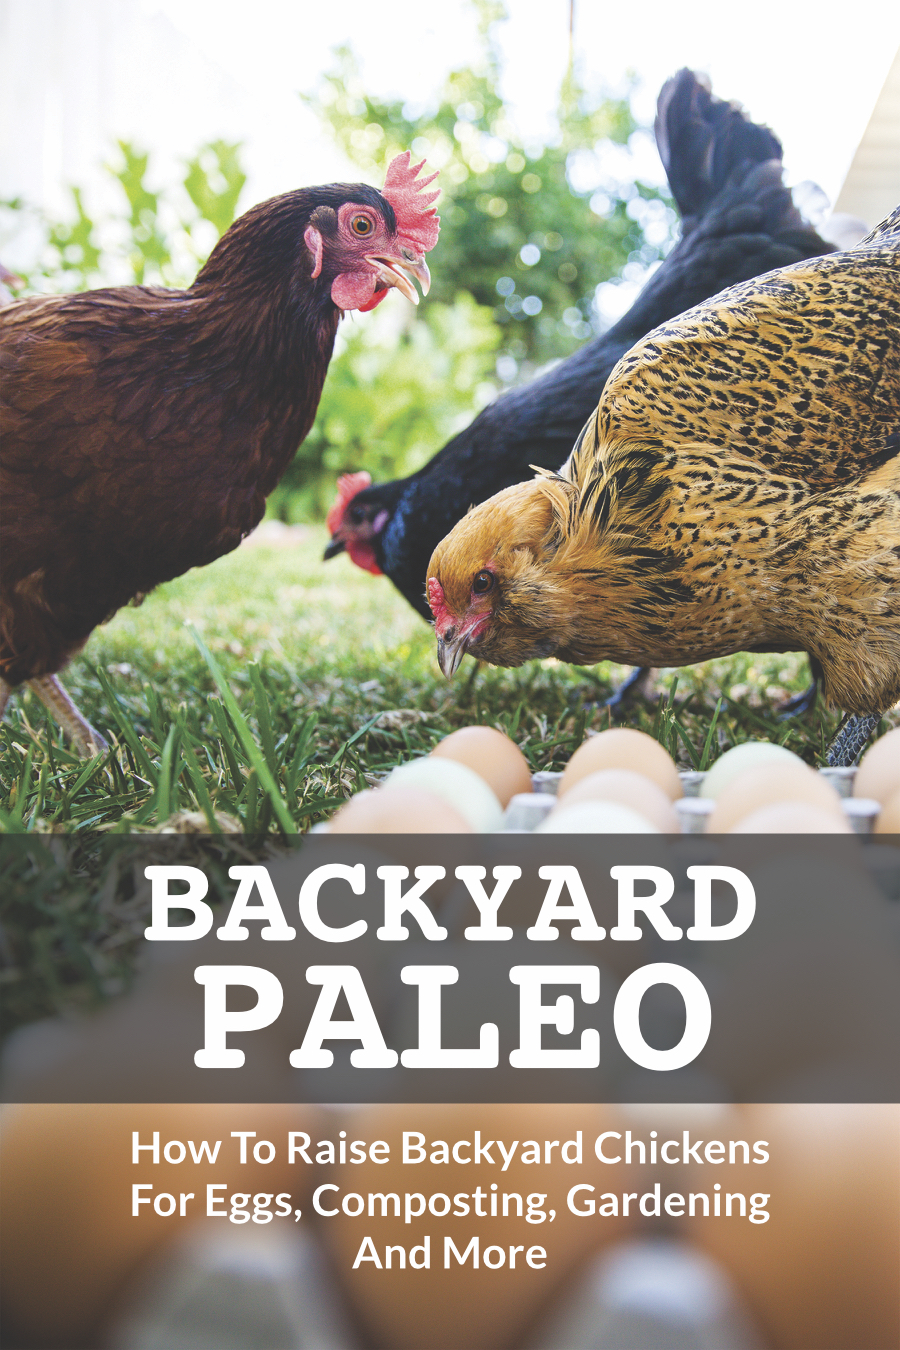 Sample Chapters - Chapter 1: The Many Benefits Of Raising ChickensChapter 4: Raising Baby ChicksChapter 6: Egg Production